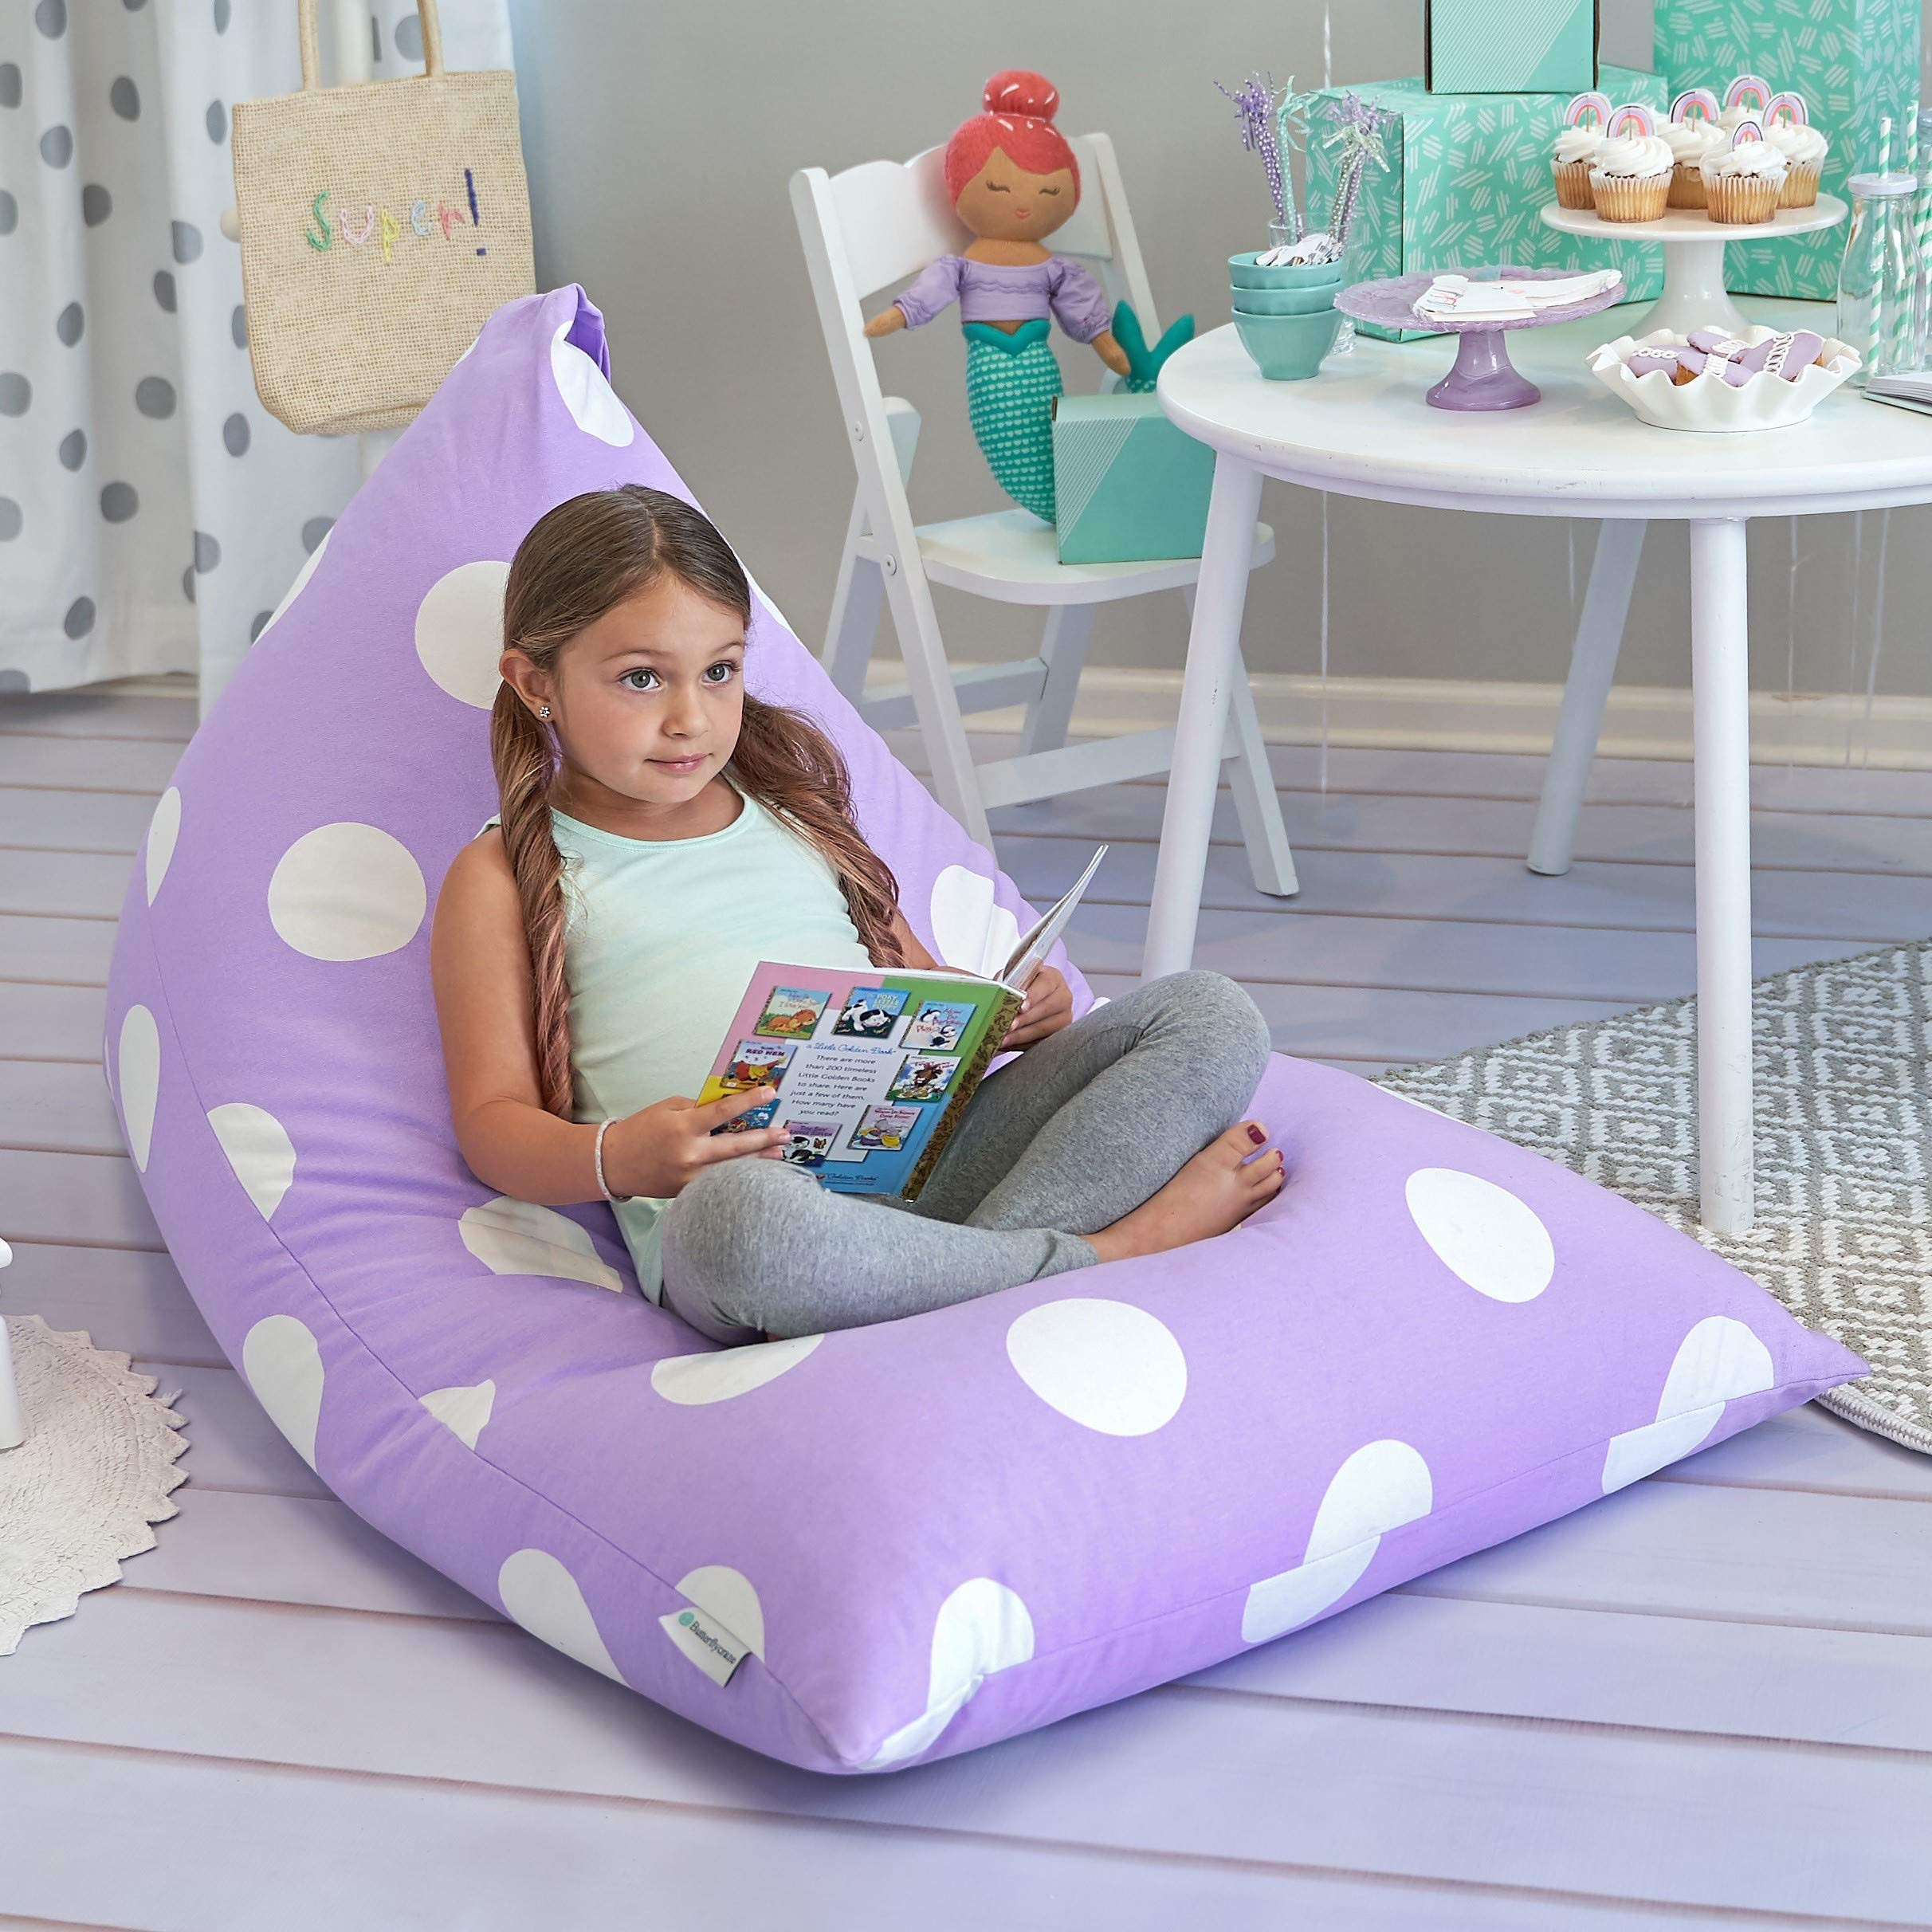 Butterfly Craze Stuffed Animal Storage Bean Bag Chair - Stuff 'n Sit Toy Bag Floor Lounger for Kids, Teens and Adult  Extra Large 200L/52 Gal Capacity  Premium Cotton Canvas (Purple) by Butterfly Craze